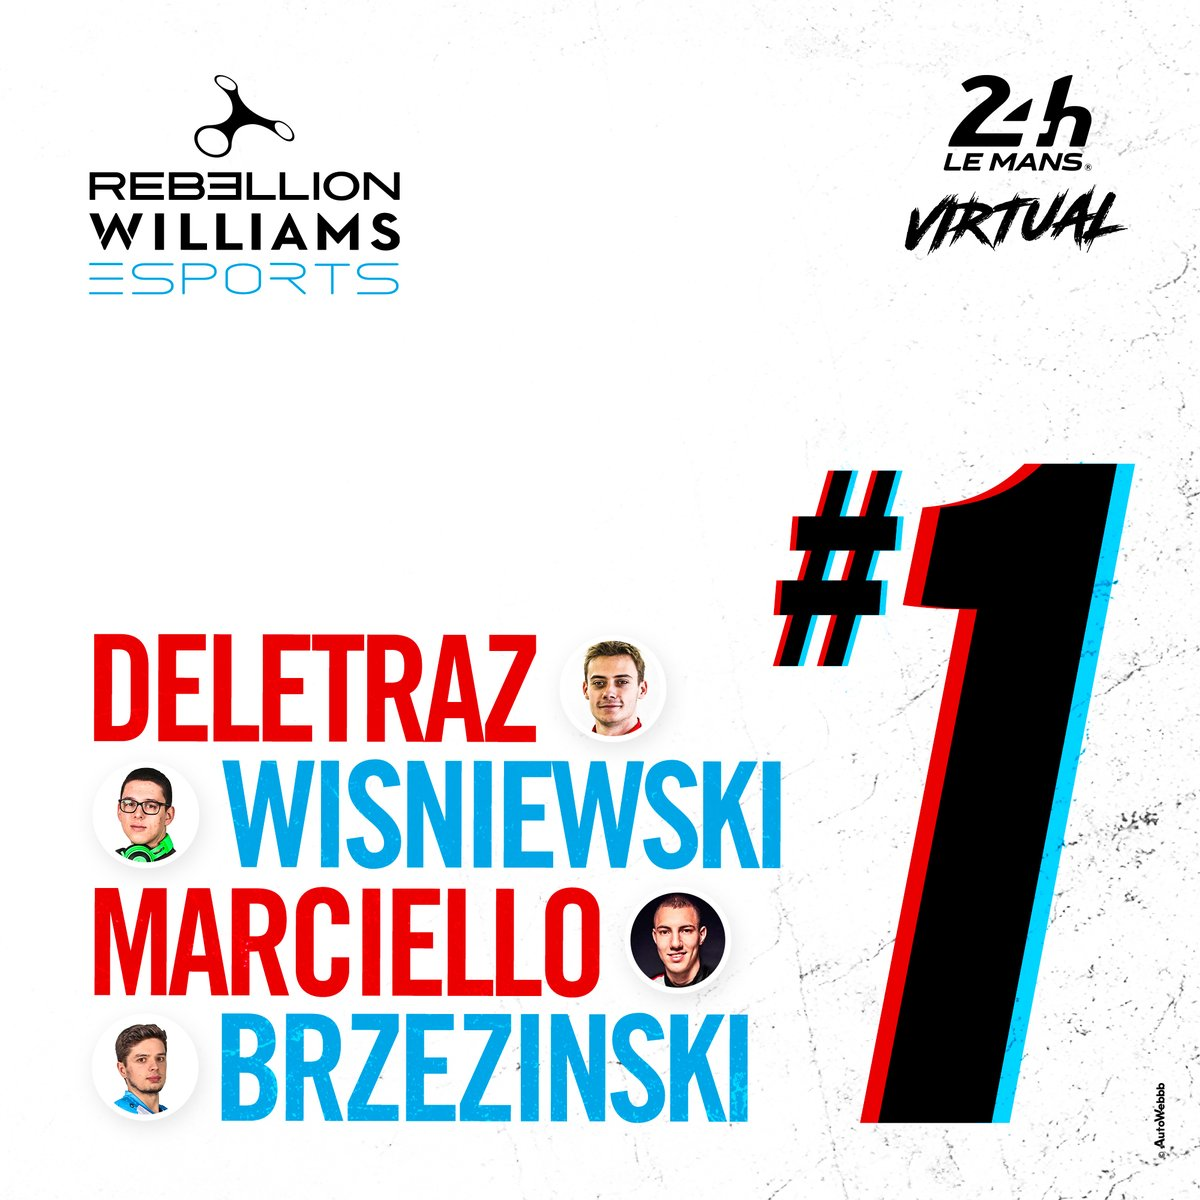 #rFactor2   Announcing our first teams for the Virtual @24hoursoflemans! 💪  #WilliamsEsports X @RebellionRacing https://t.co/FFsx7CKX1O